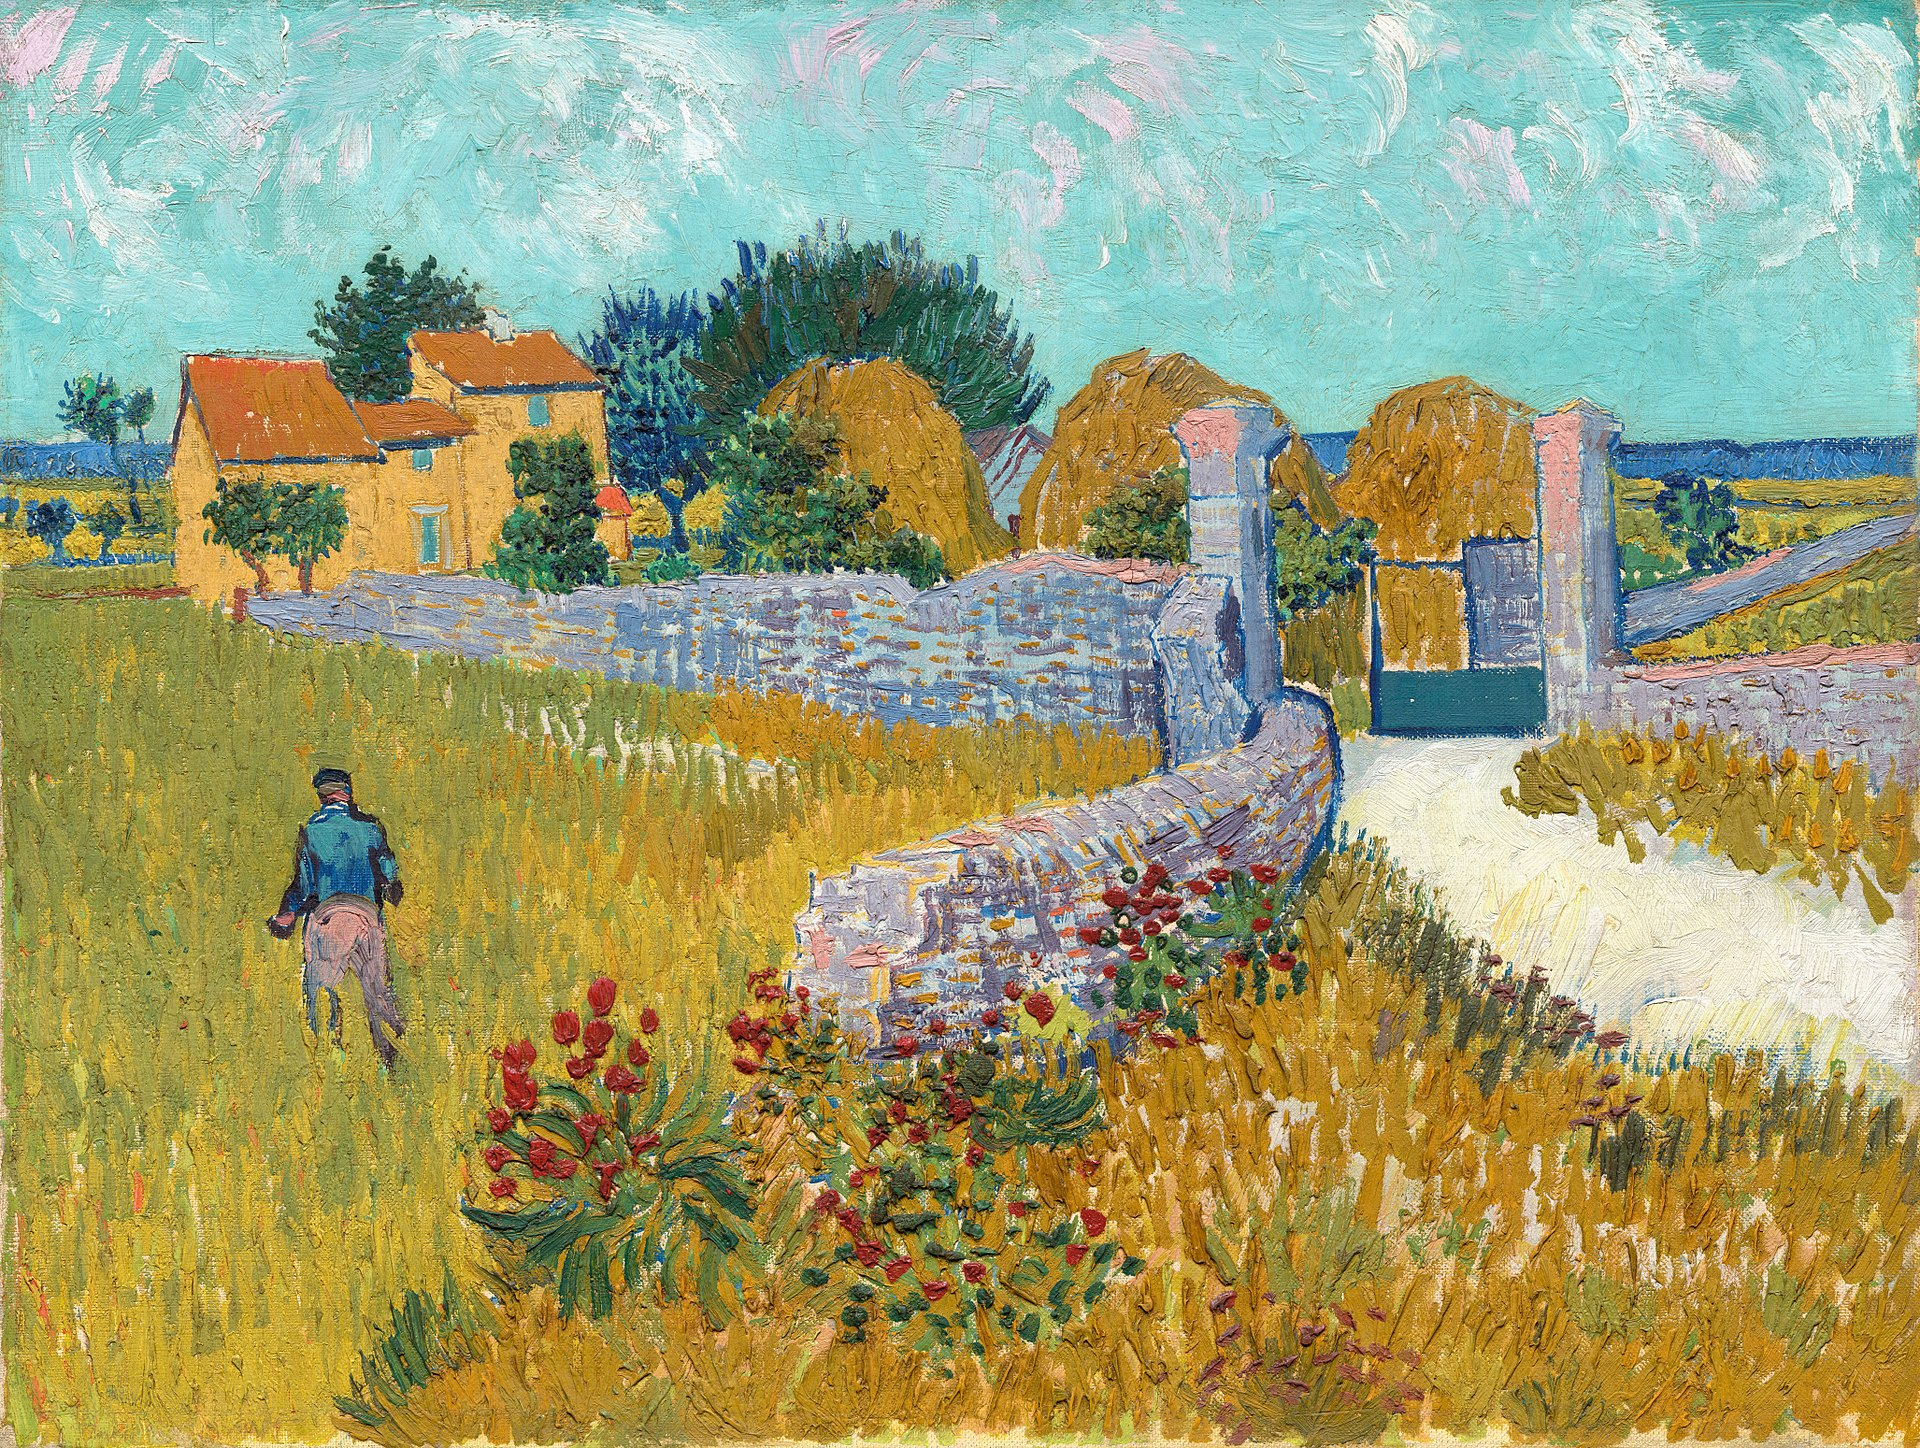 Farmhouse in Provence, 1888, Vincent van Gogh, NGA.jpg